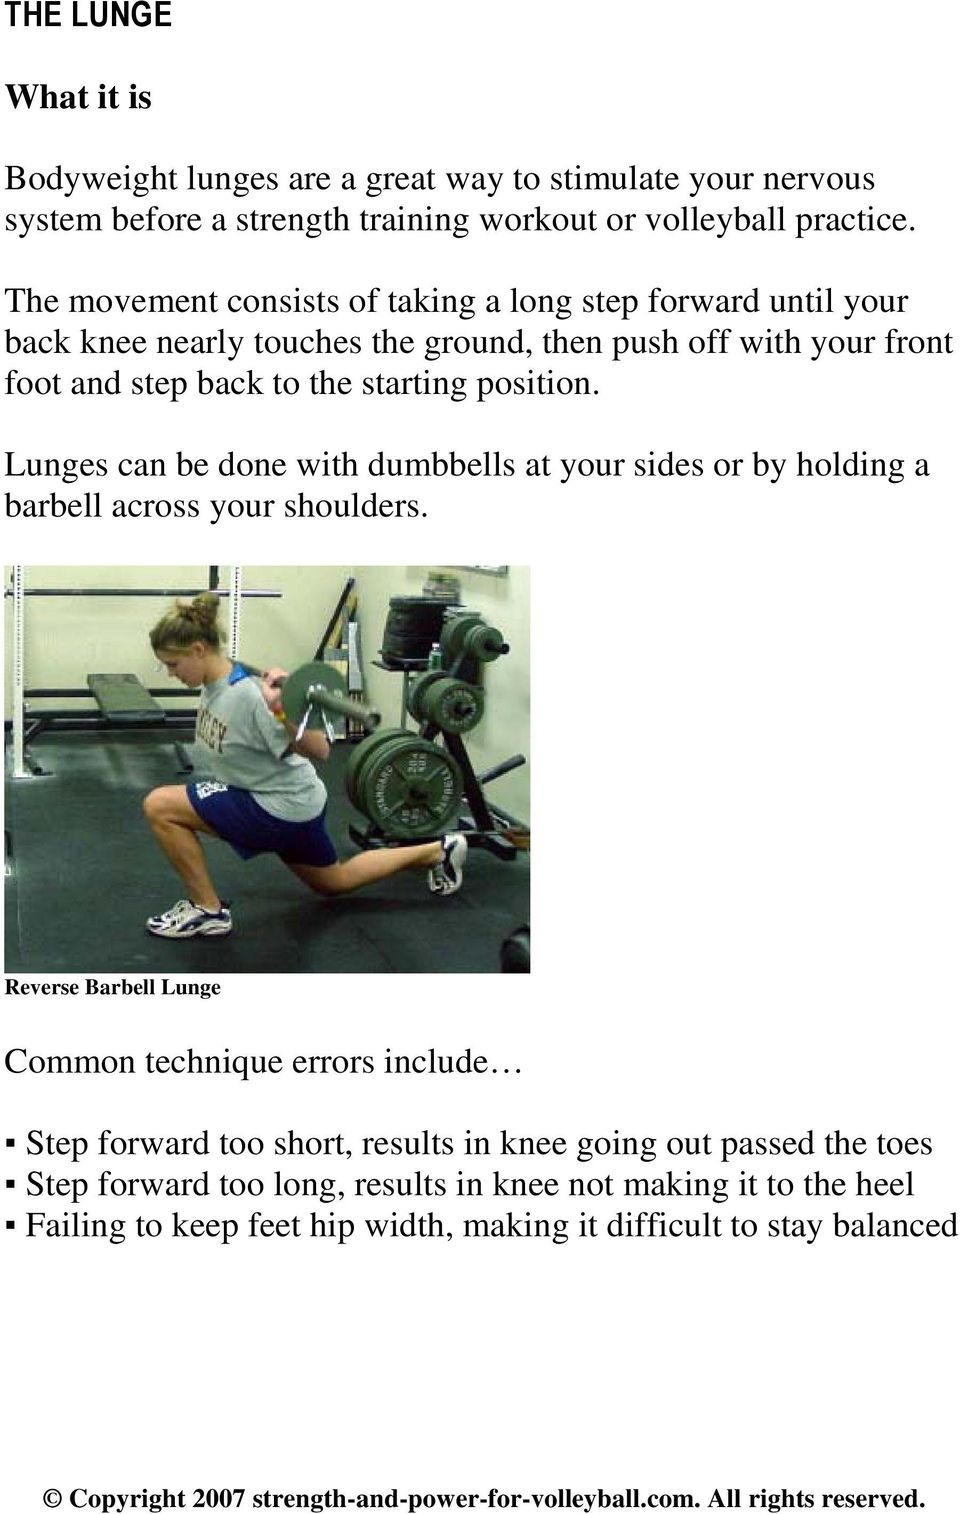 position. Lunges can be done with dumbbells at your sides or by holding a barbell across your shoulders.